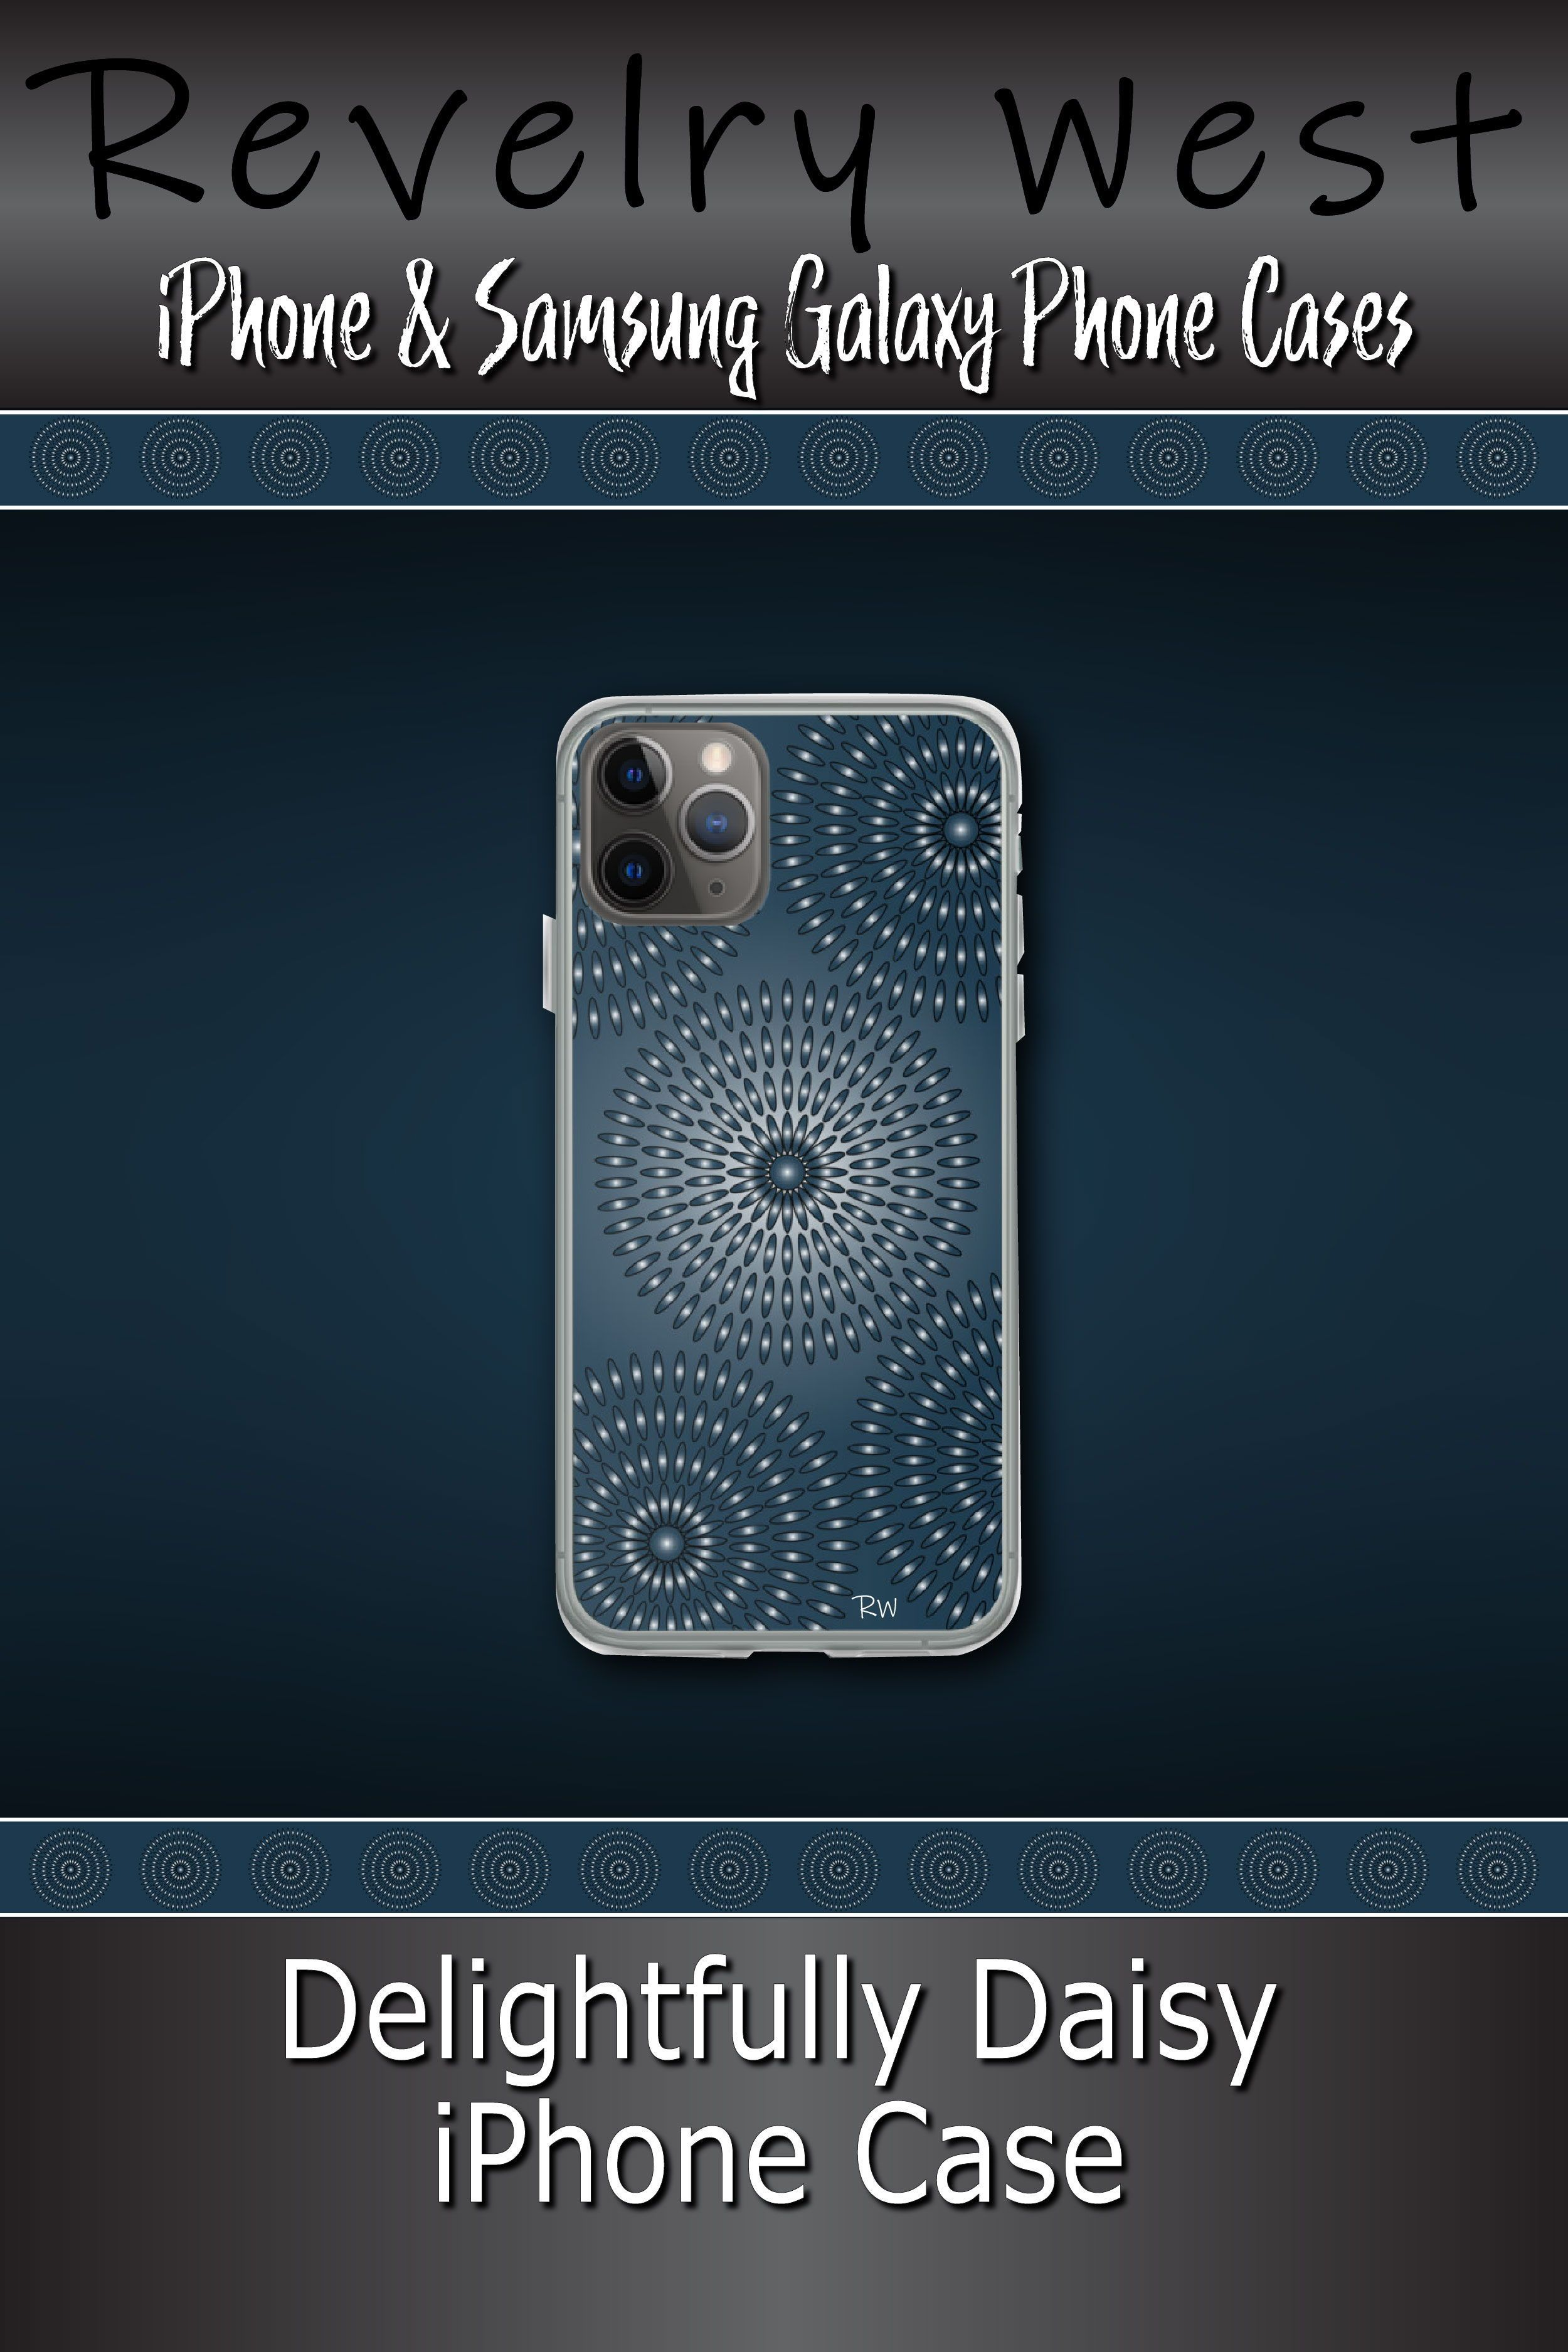 Revelry West  Fashionable Phone Cases That Reflect your Personal Style